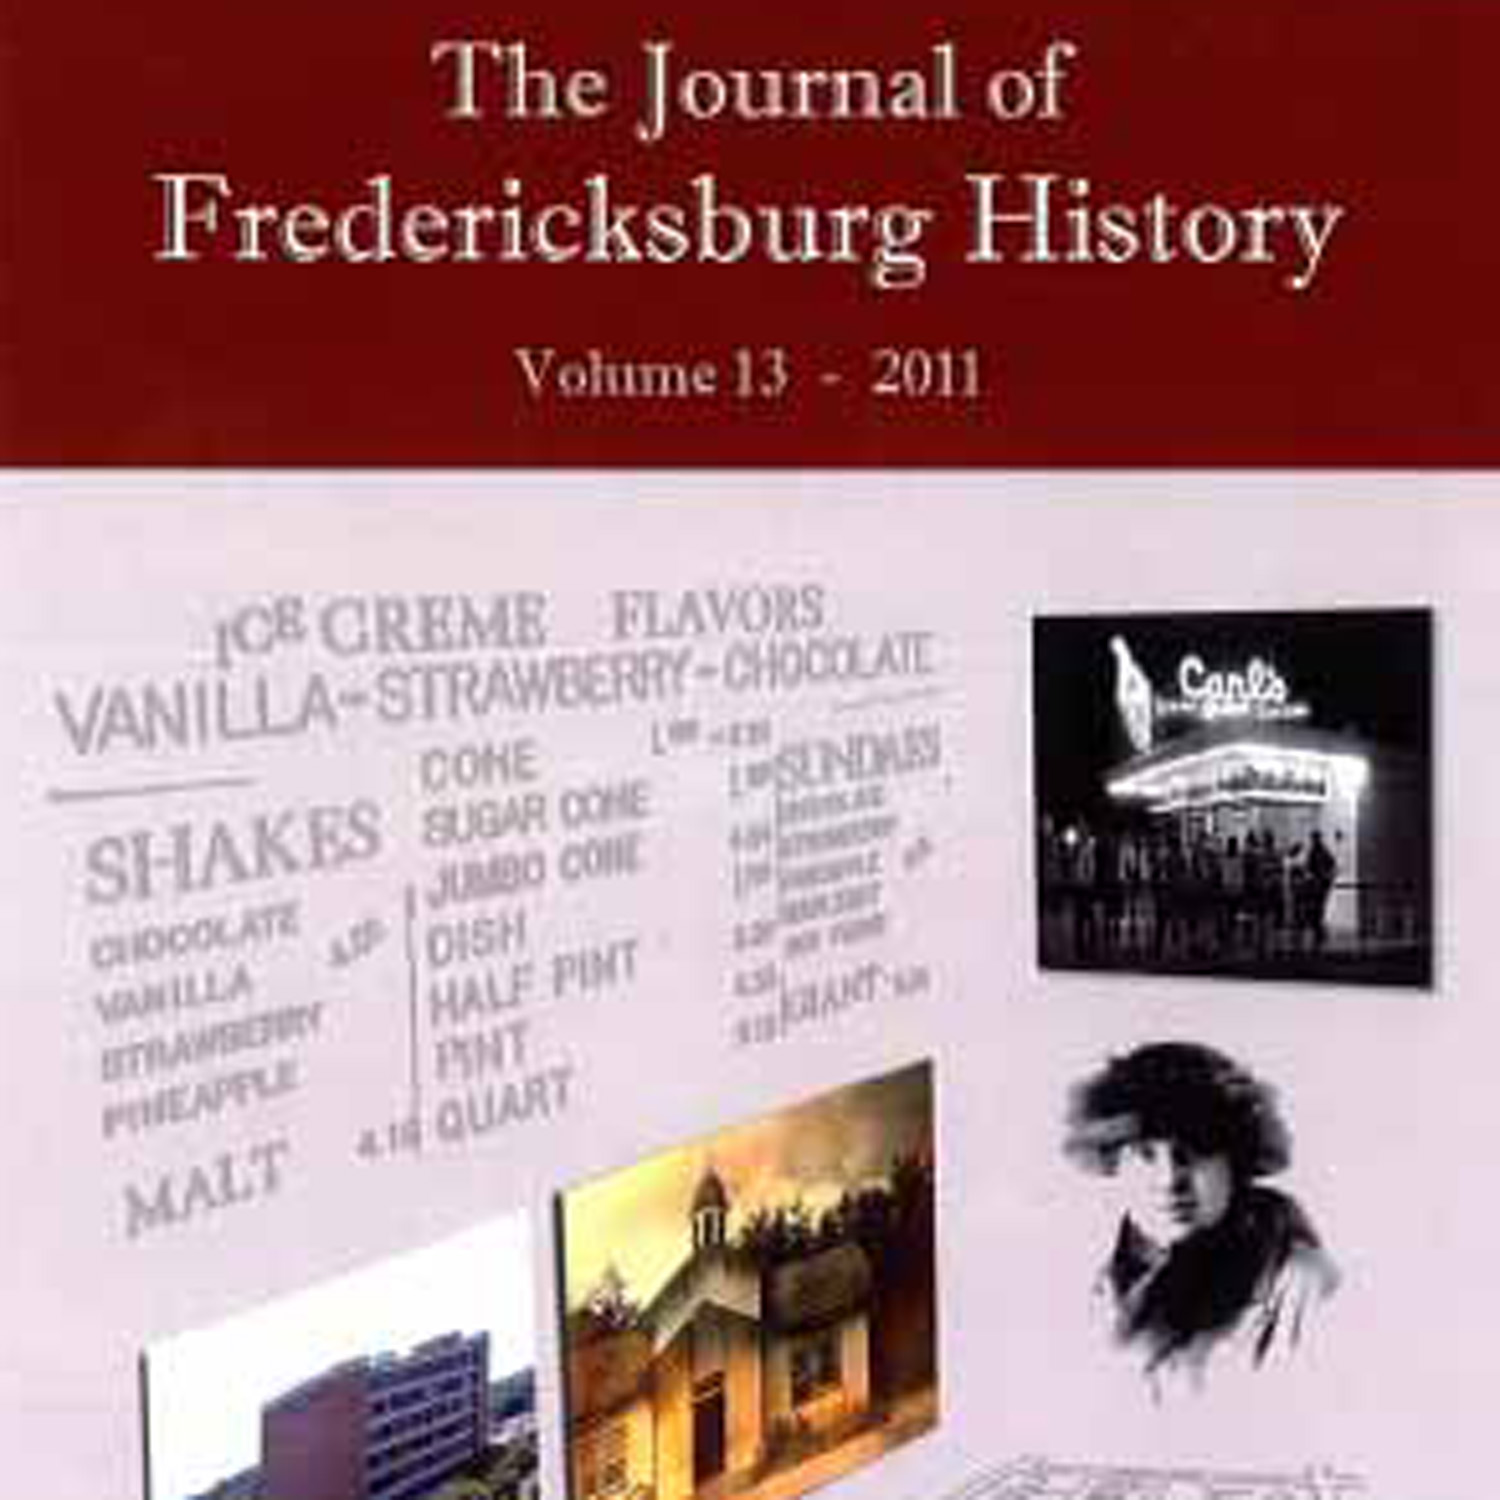 The Journal of Fredericksburg History